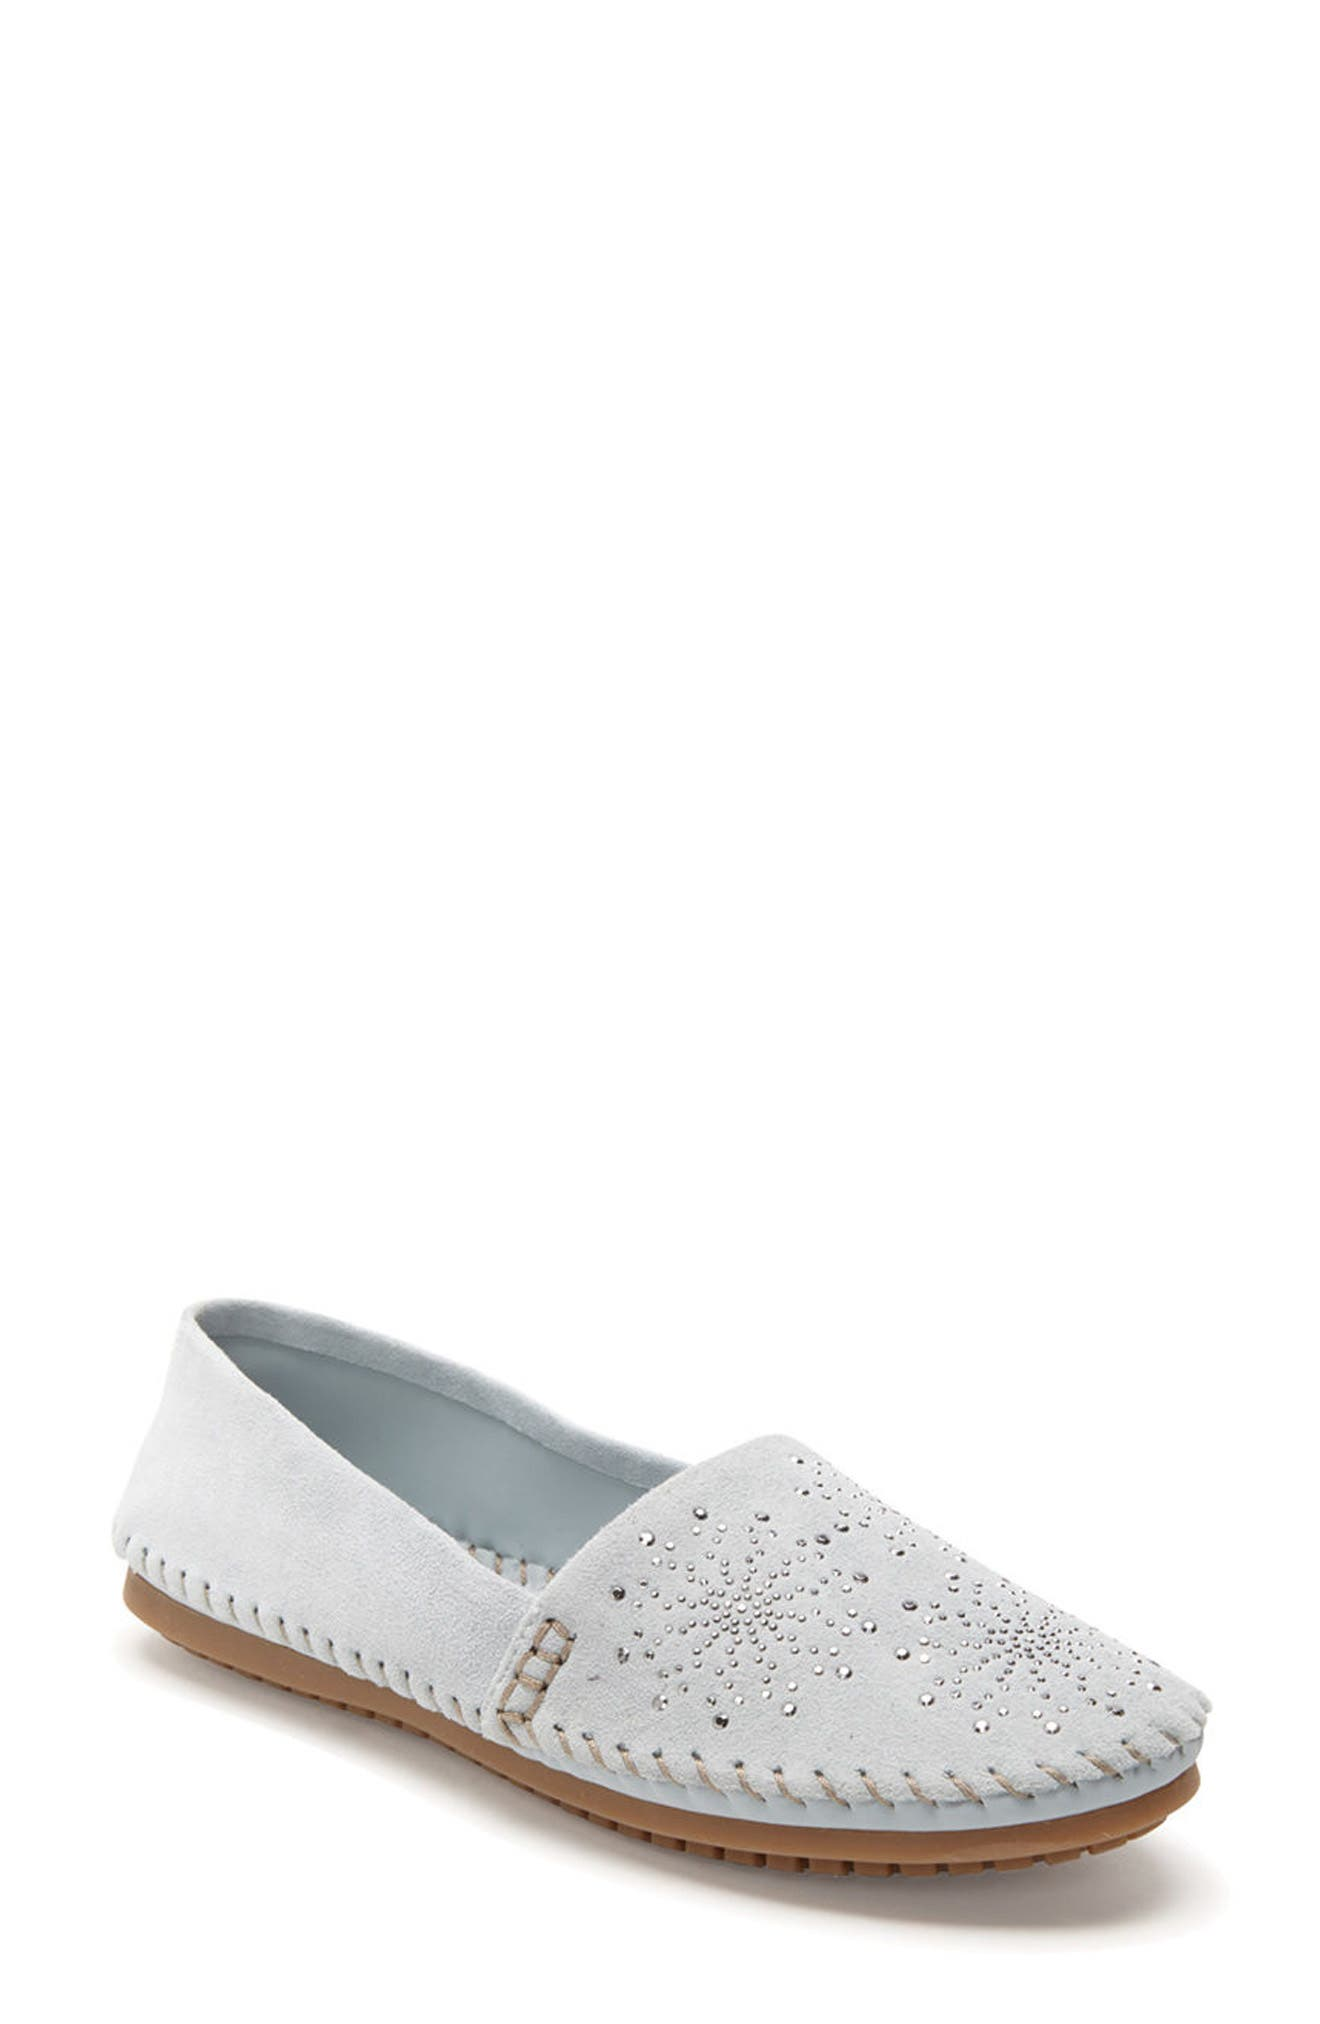 Adam Tucker Stardust Loafer,                             Main thumbnail 1, color,                             Sky Blue Suede